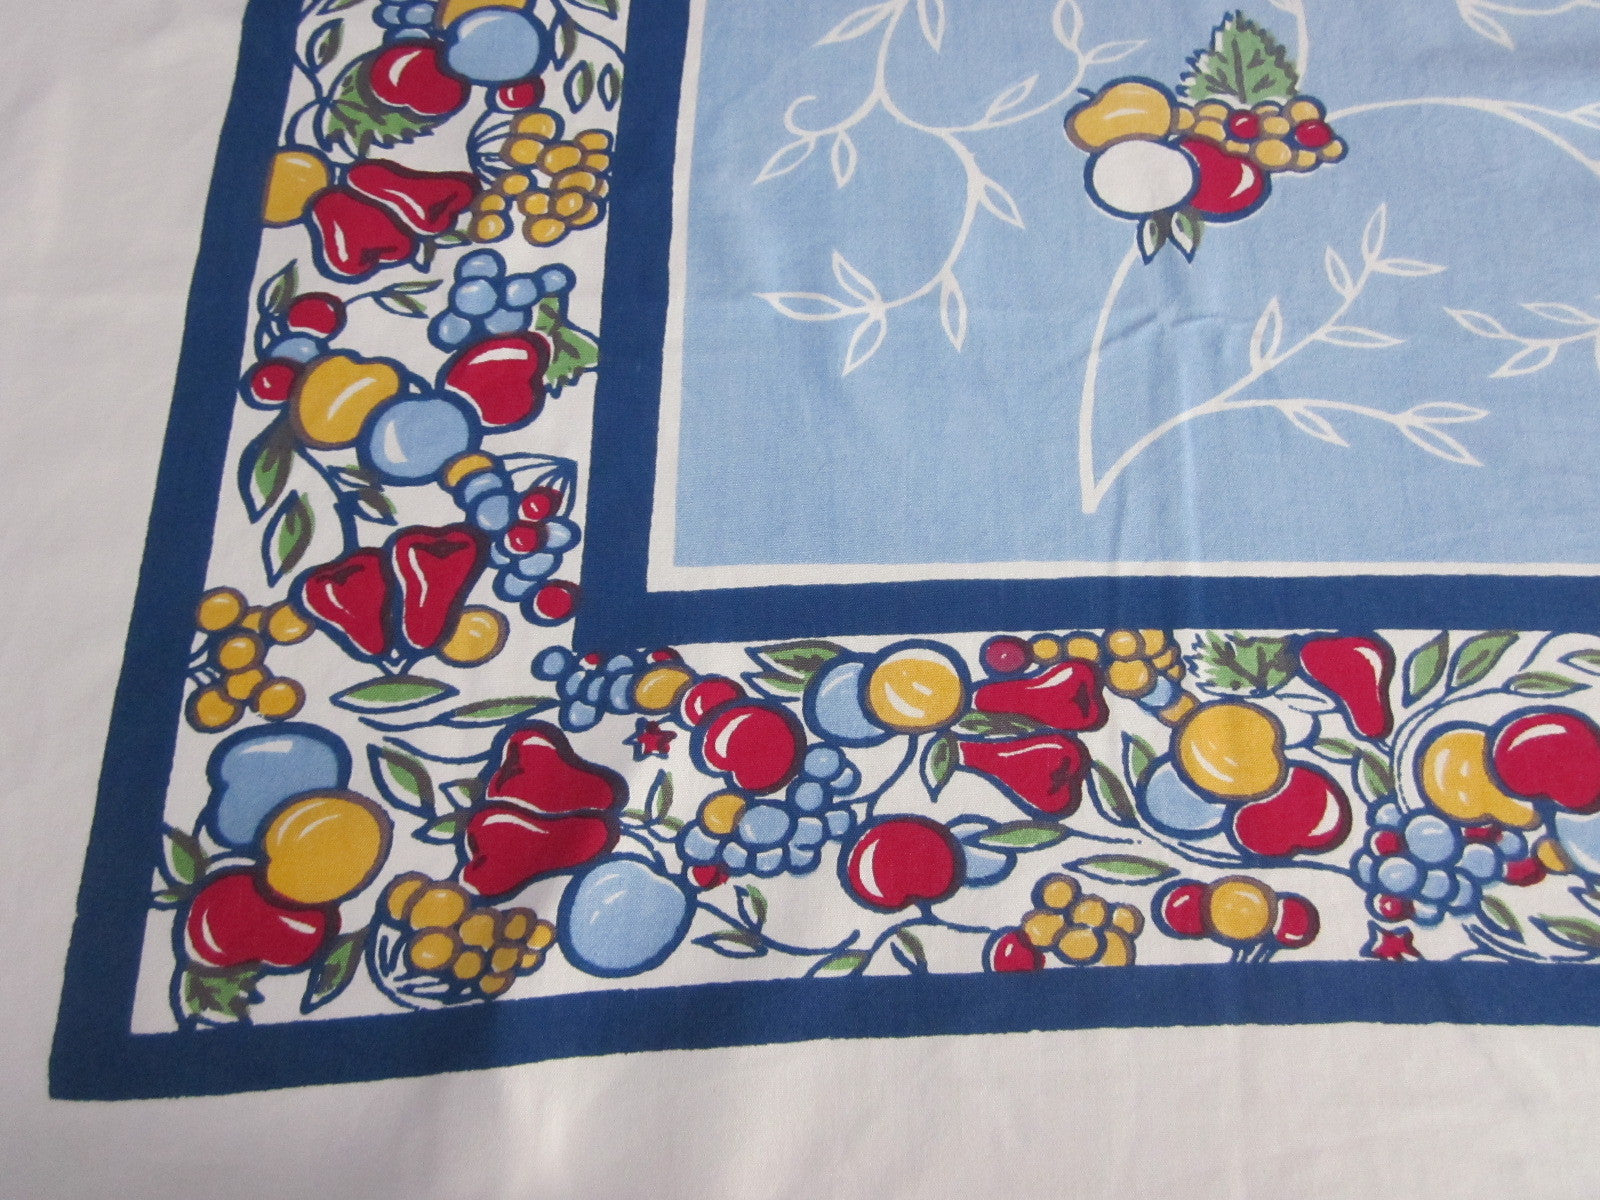 Primary Red Green Stained Glass Fruit on Blue Vintage Printed Tablecloth (52 X 46)